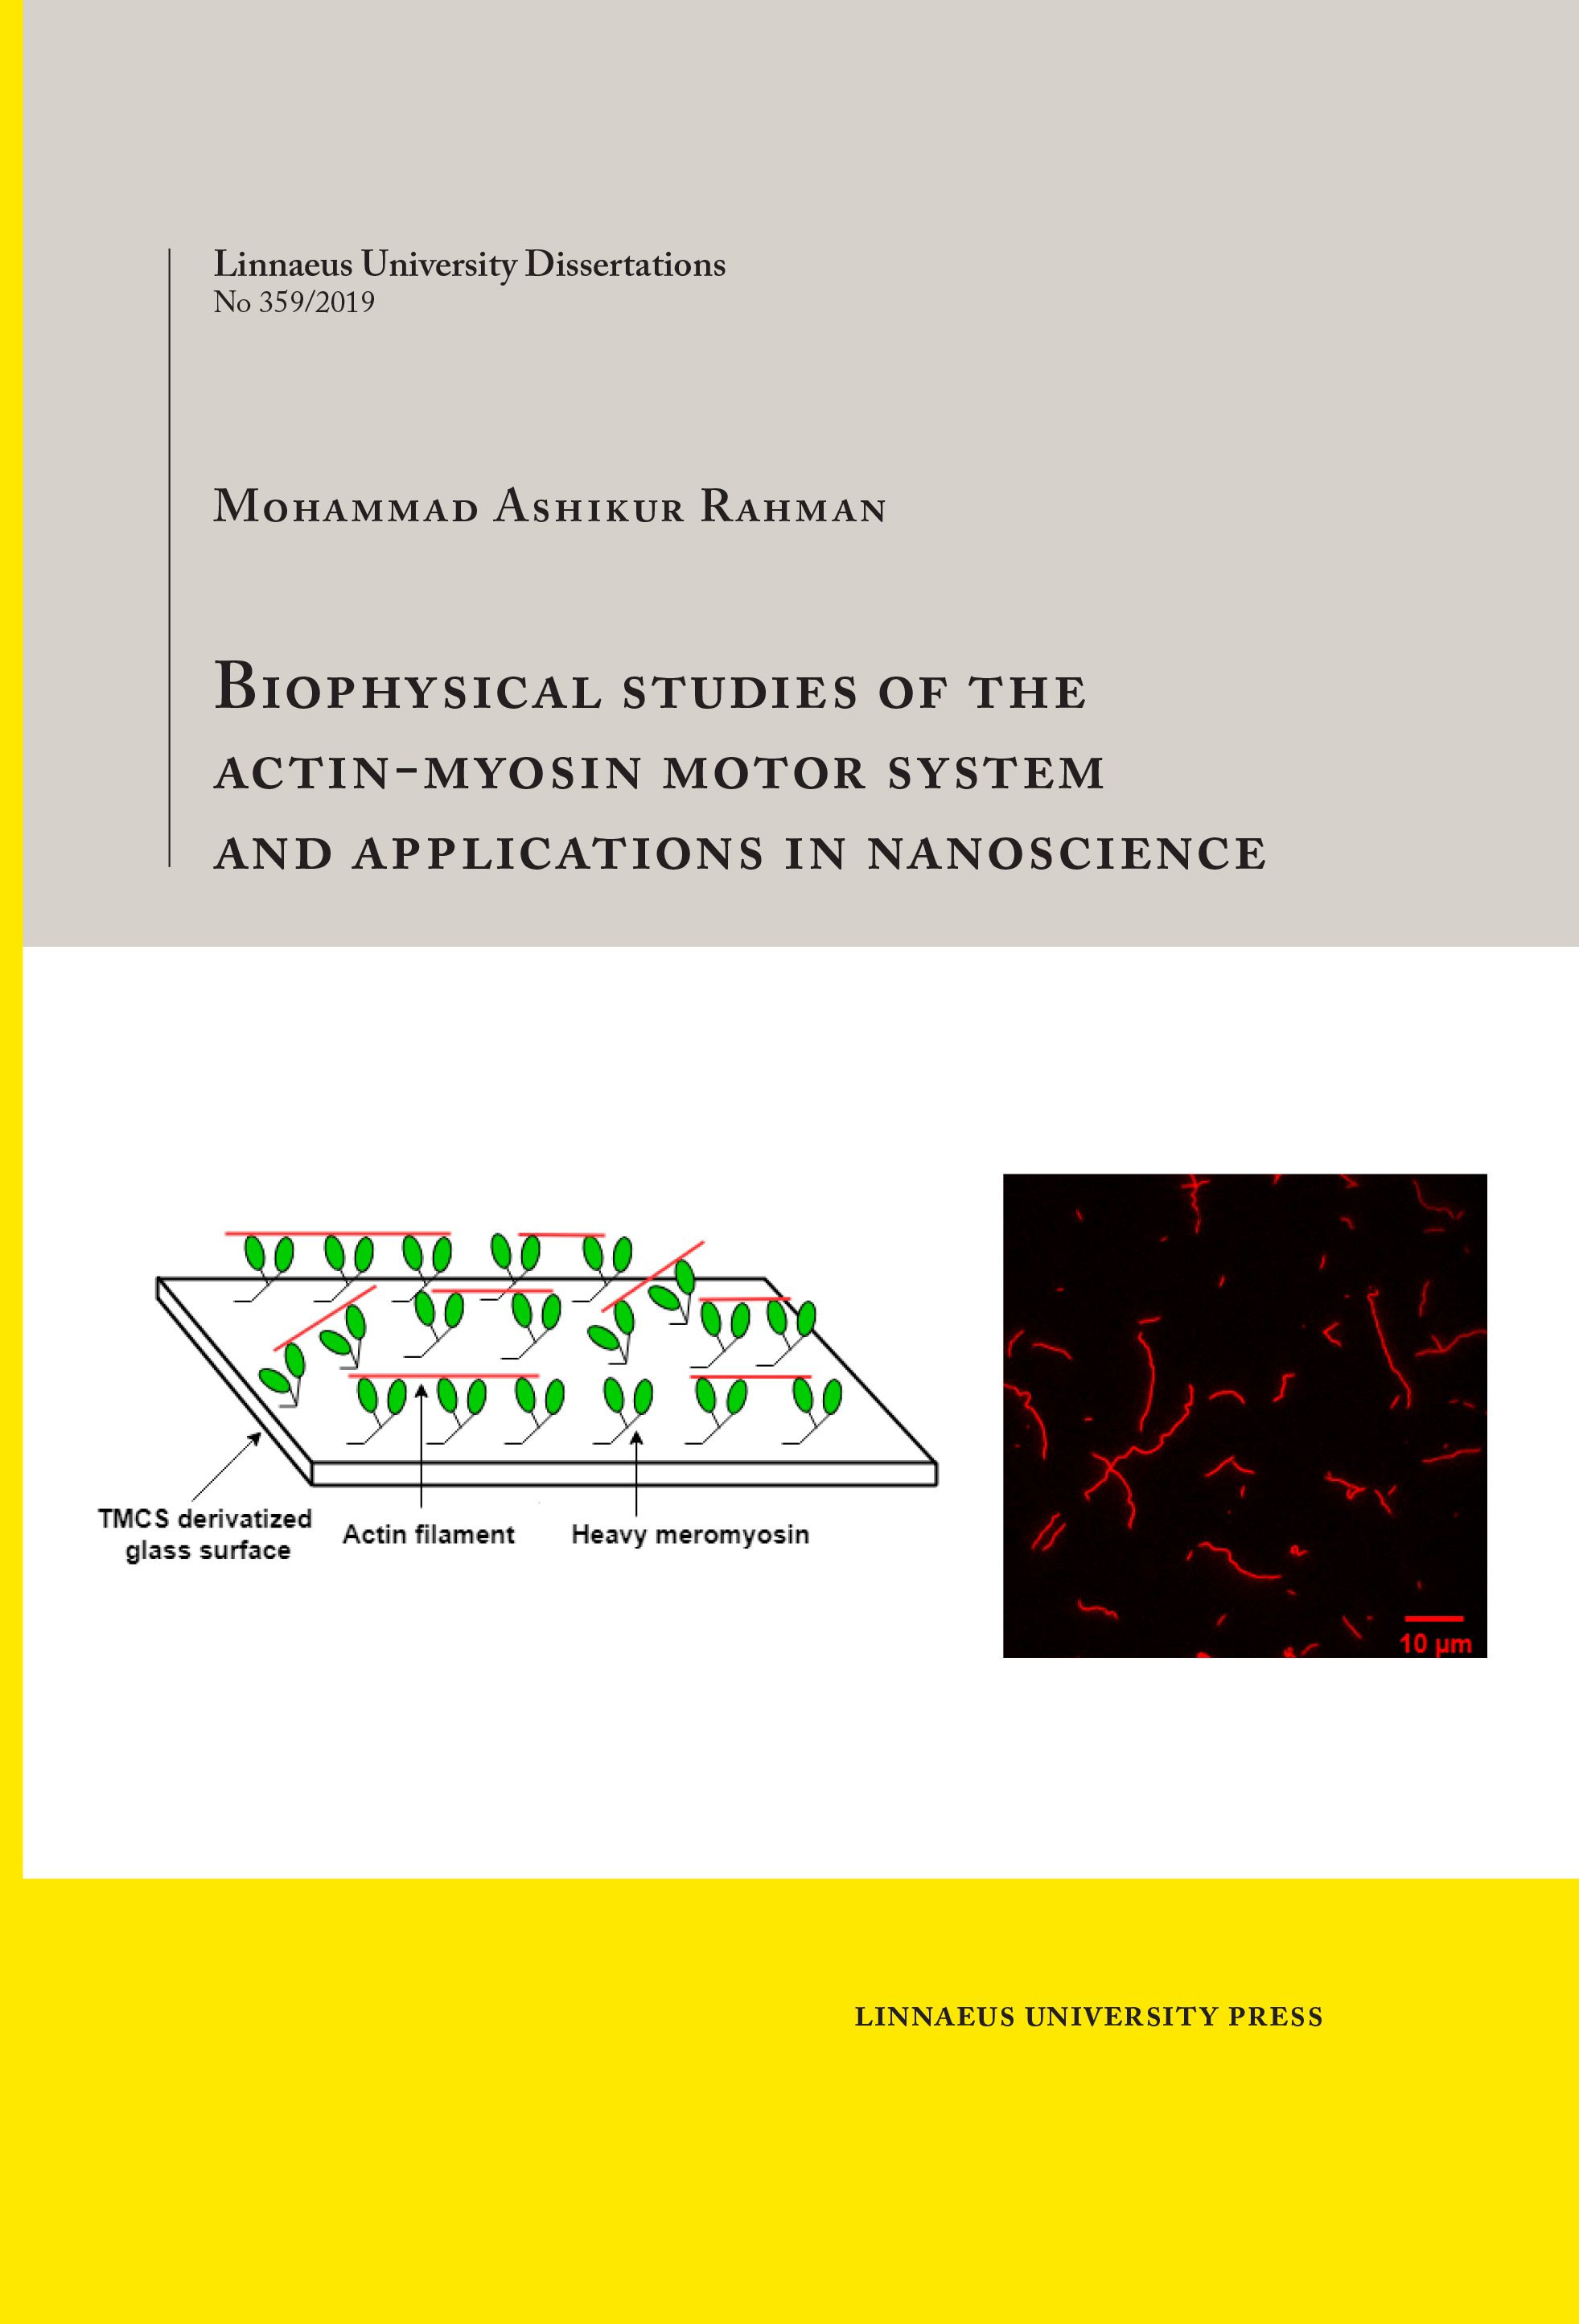 Biophysical studies of the actin-myosin motor system and